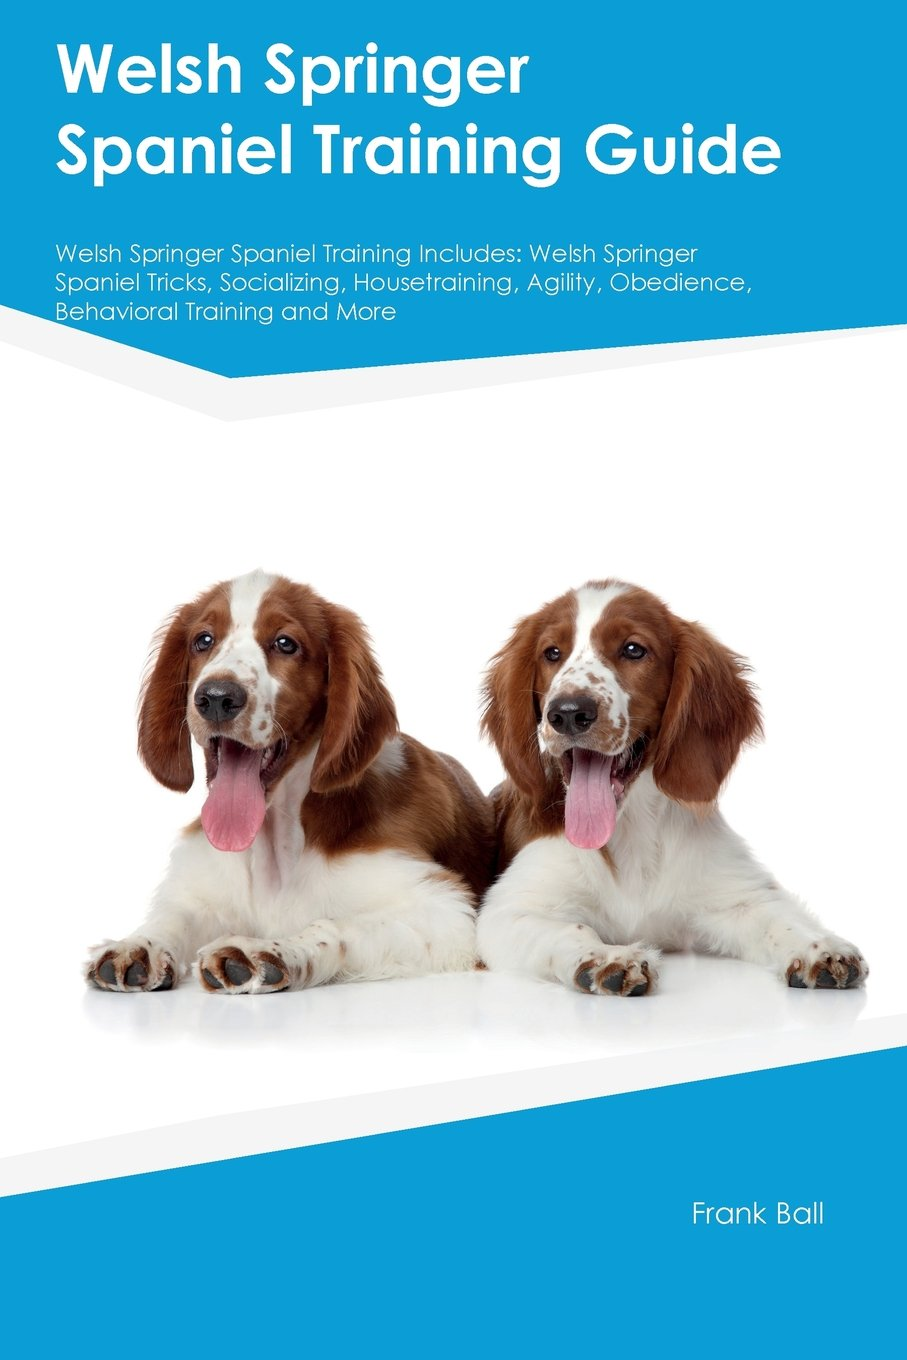 Download Welsh Springer Spaniel Training Guide Welsh Springer Spaniel Training Includes: Welsh Springer Spaniel Tricks, Socializing, Housetraining, Agility, Obedience, Behavioral Training and More pdf epub